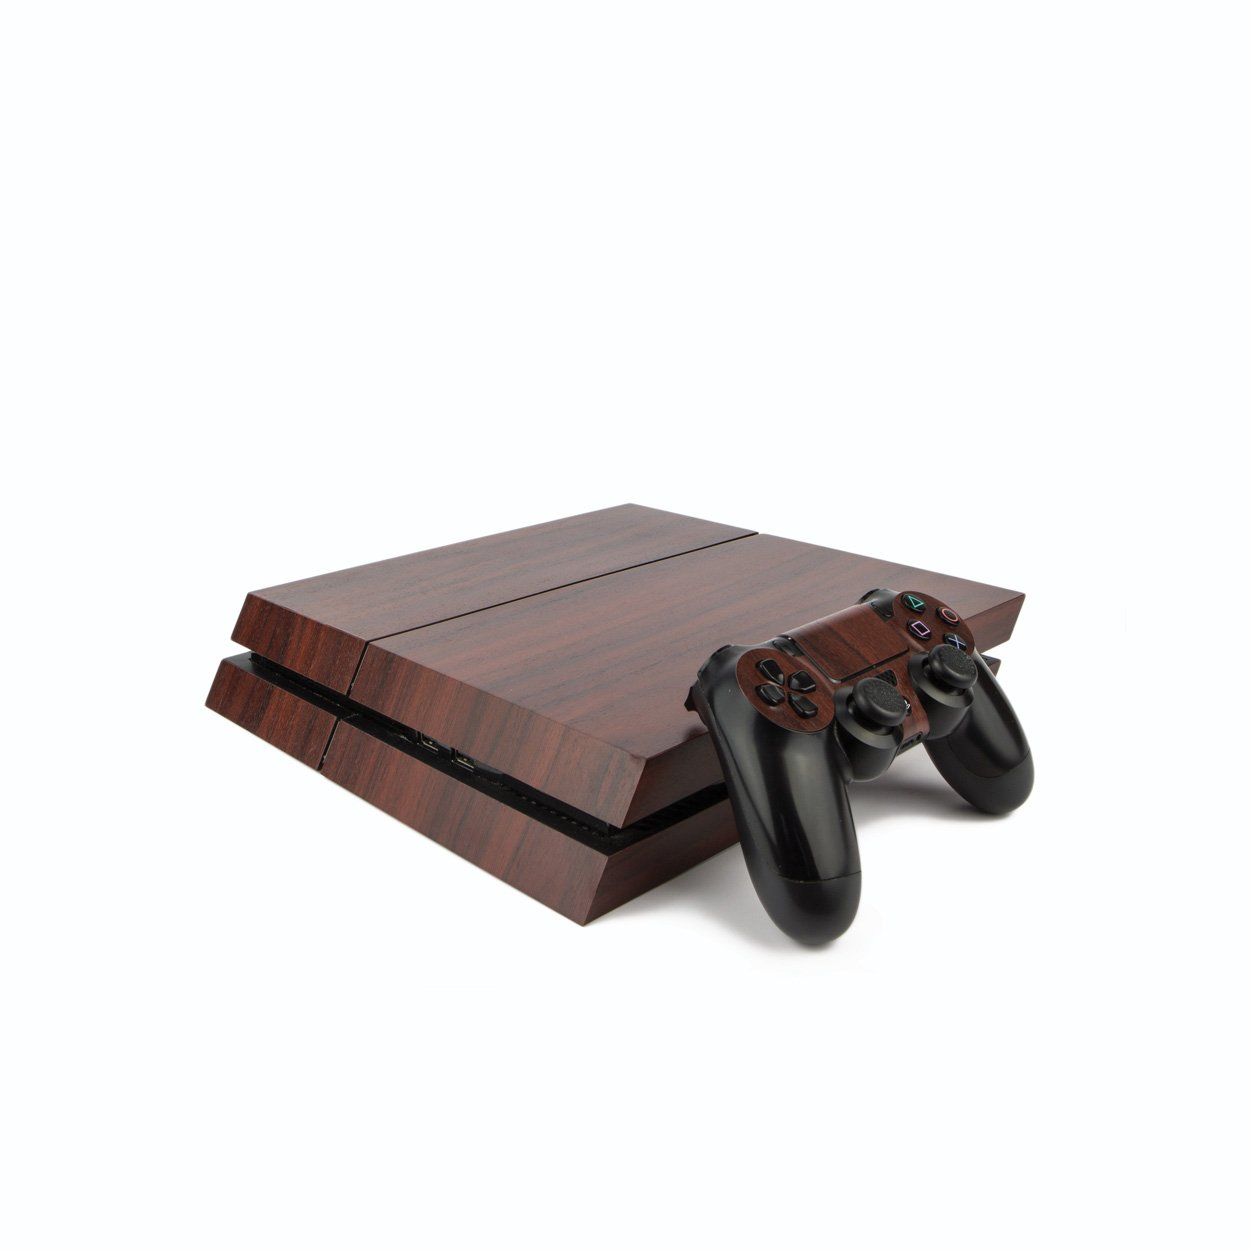 Amazon.com: Premium PS4 PlayStation 4 Wood Effect Vinyl Wrap ...